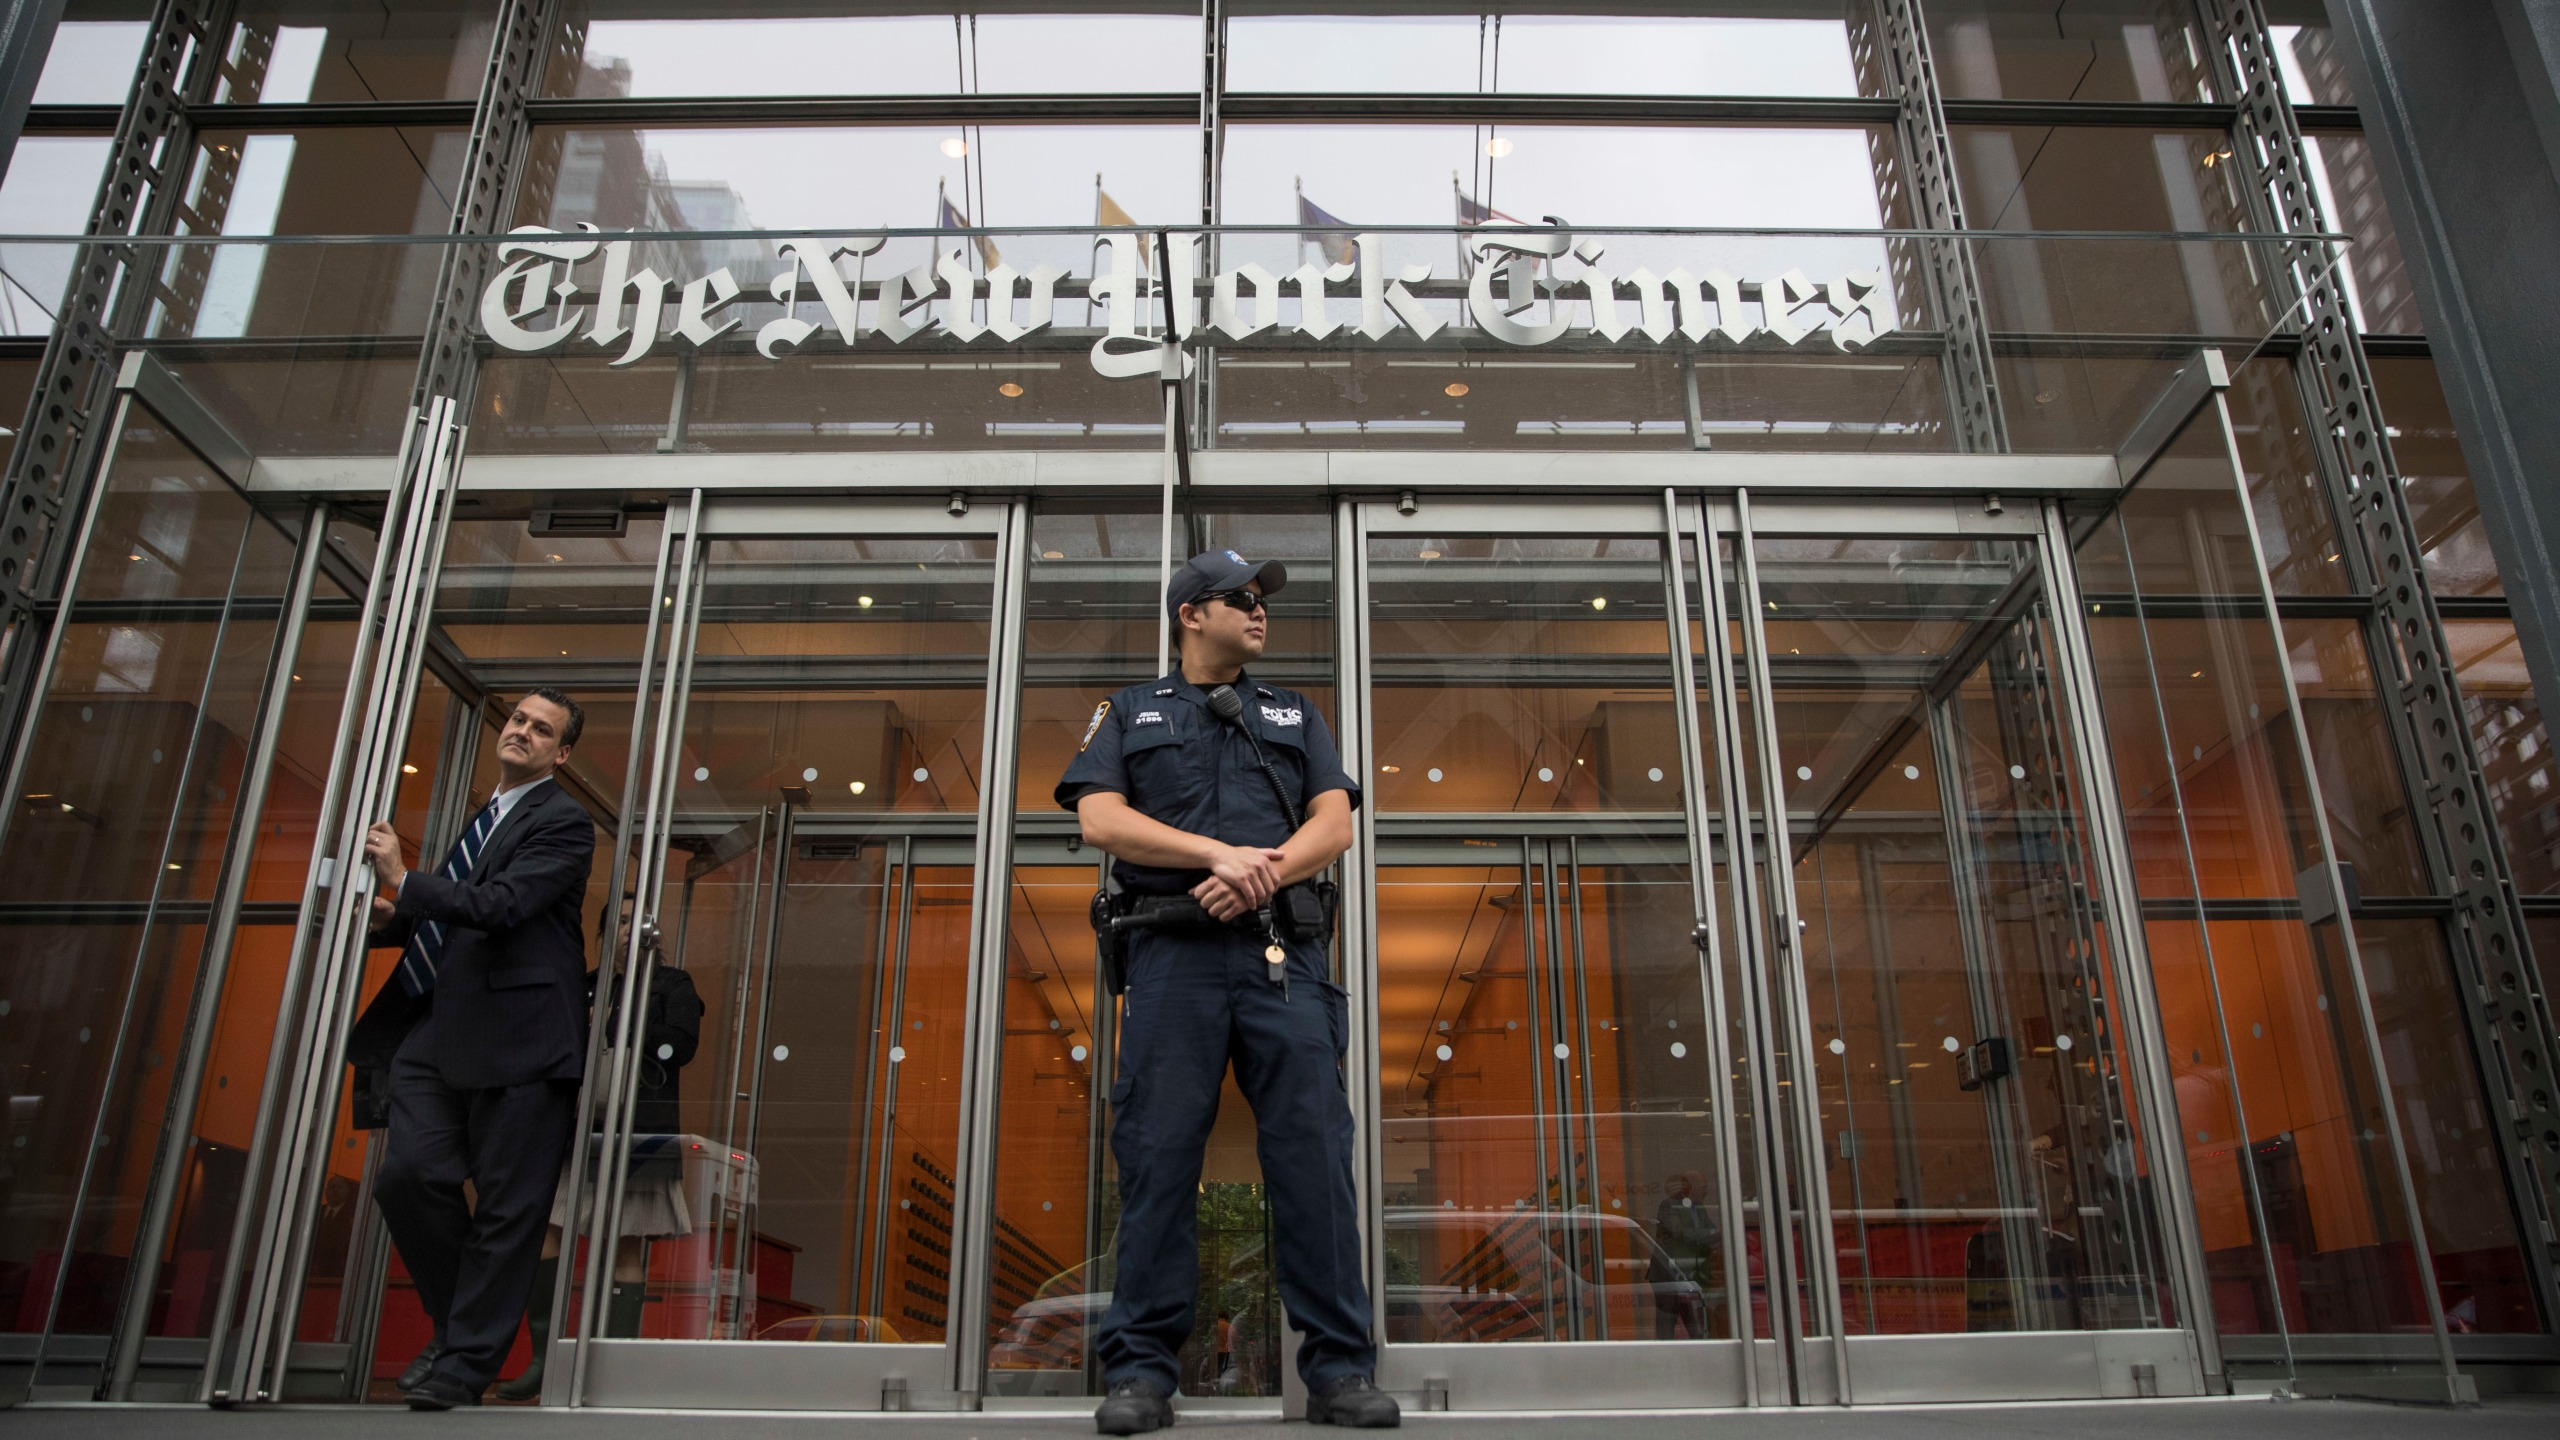 In this June 28, 2018, file photo, a police officer stands outside The New York Times building in New York. The Trump Justice Department secretly obtained the phone records of four New York Times journalists as part of a leak investigation, the newspaper said Wednesday, June 2, 2021. (AP Photo/Mary Altaffer, File)